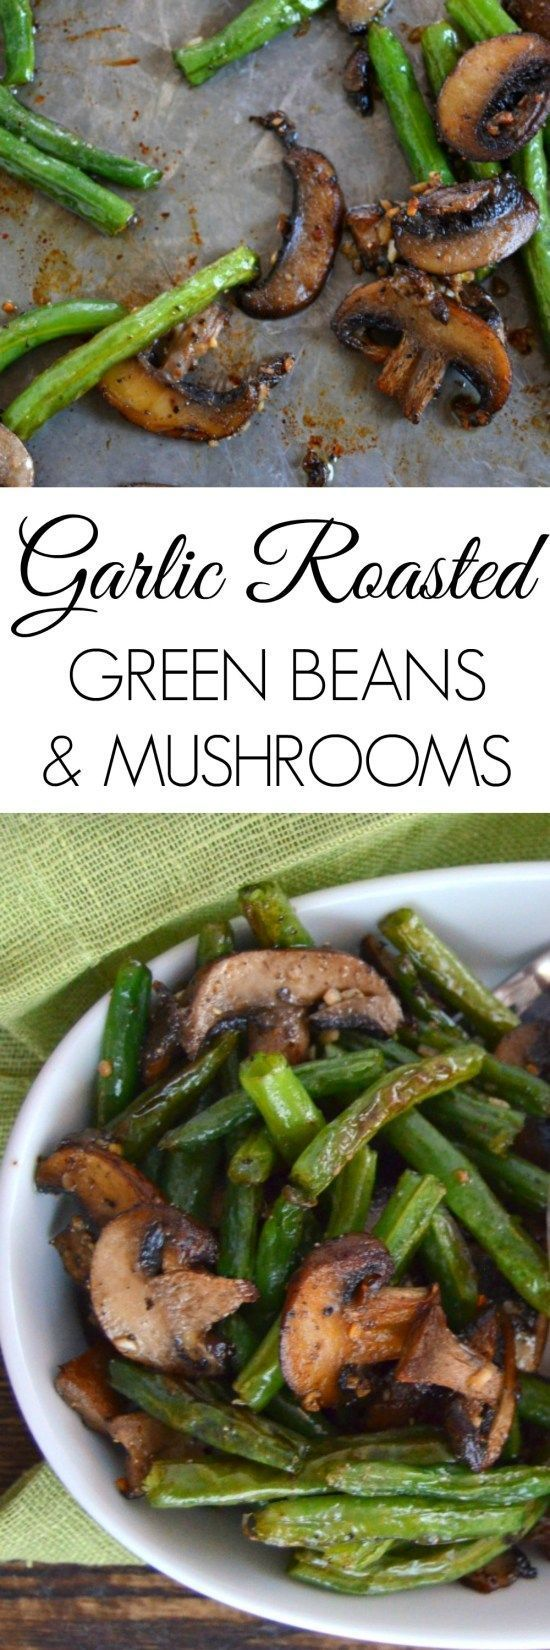 Garlic Roasted Green Beans and Mushrooms Garlic Roasted Green Beans and Mushrooms